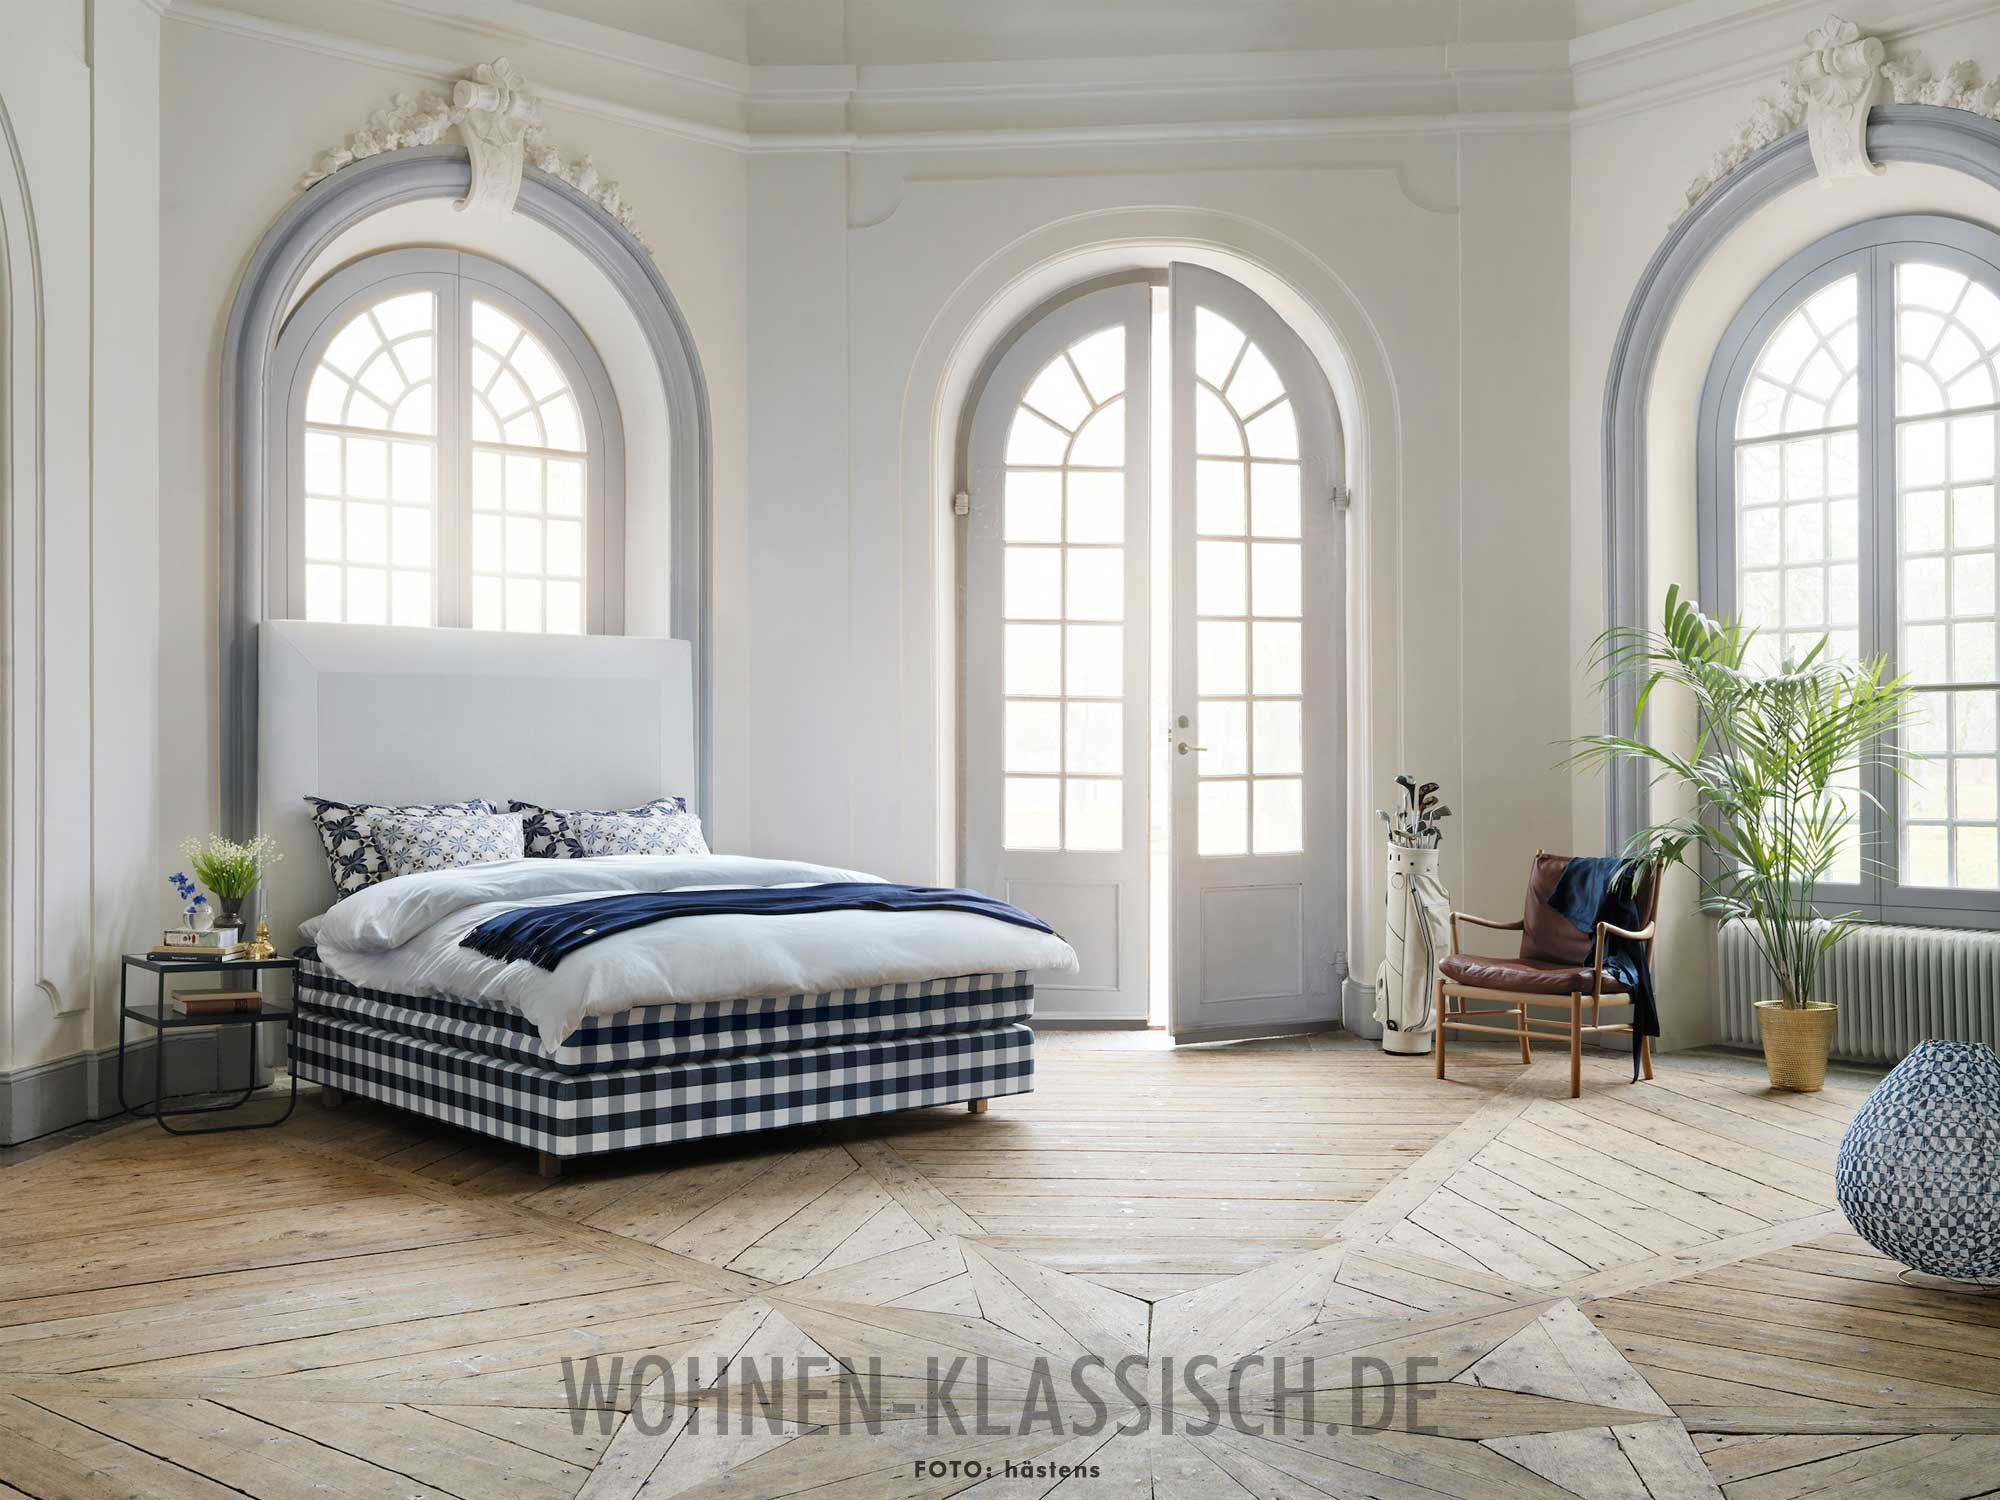 nat rlich gebettet klassisch wohnen. Black Bedroom Furniture Sets. Home Design Ideas